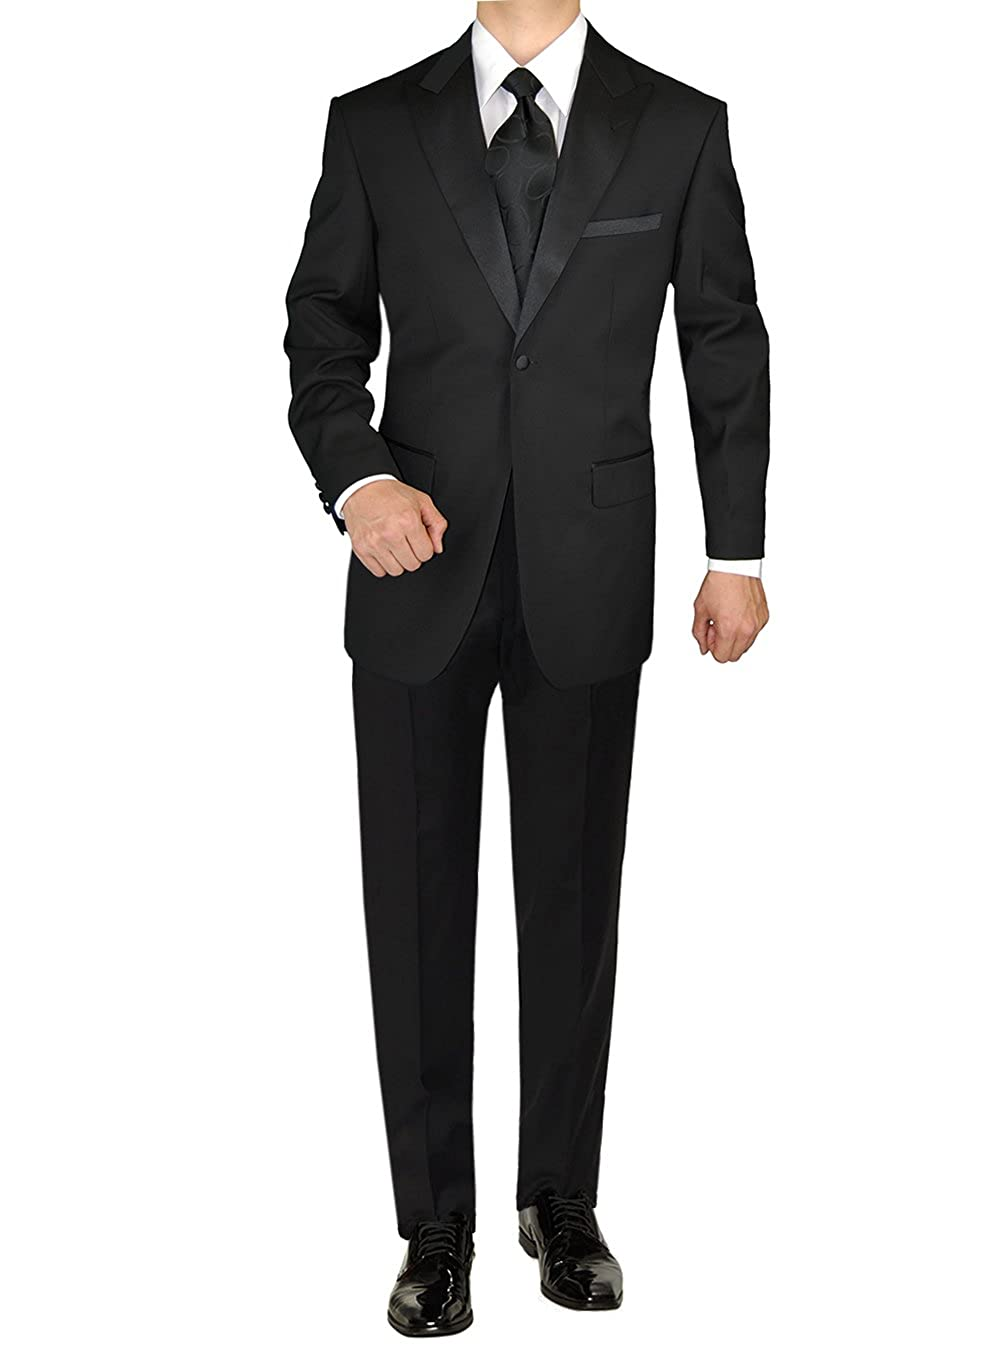 Men's Vintage Style Suits, Classic Suits GN GIORGIO NAPOLI Mens Tuxedo Suit 1 Button Peak Lapel Jacket Adjustable Pants $129.95 AT vintagedancer.com